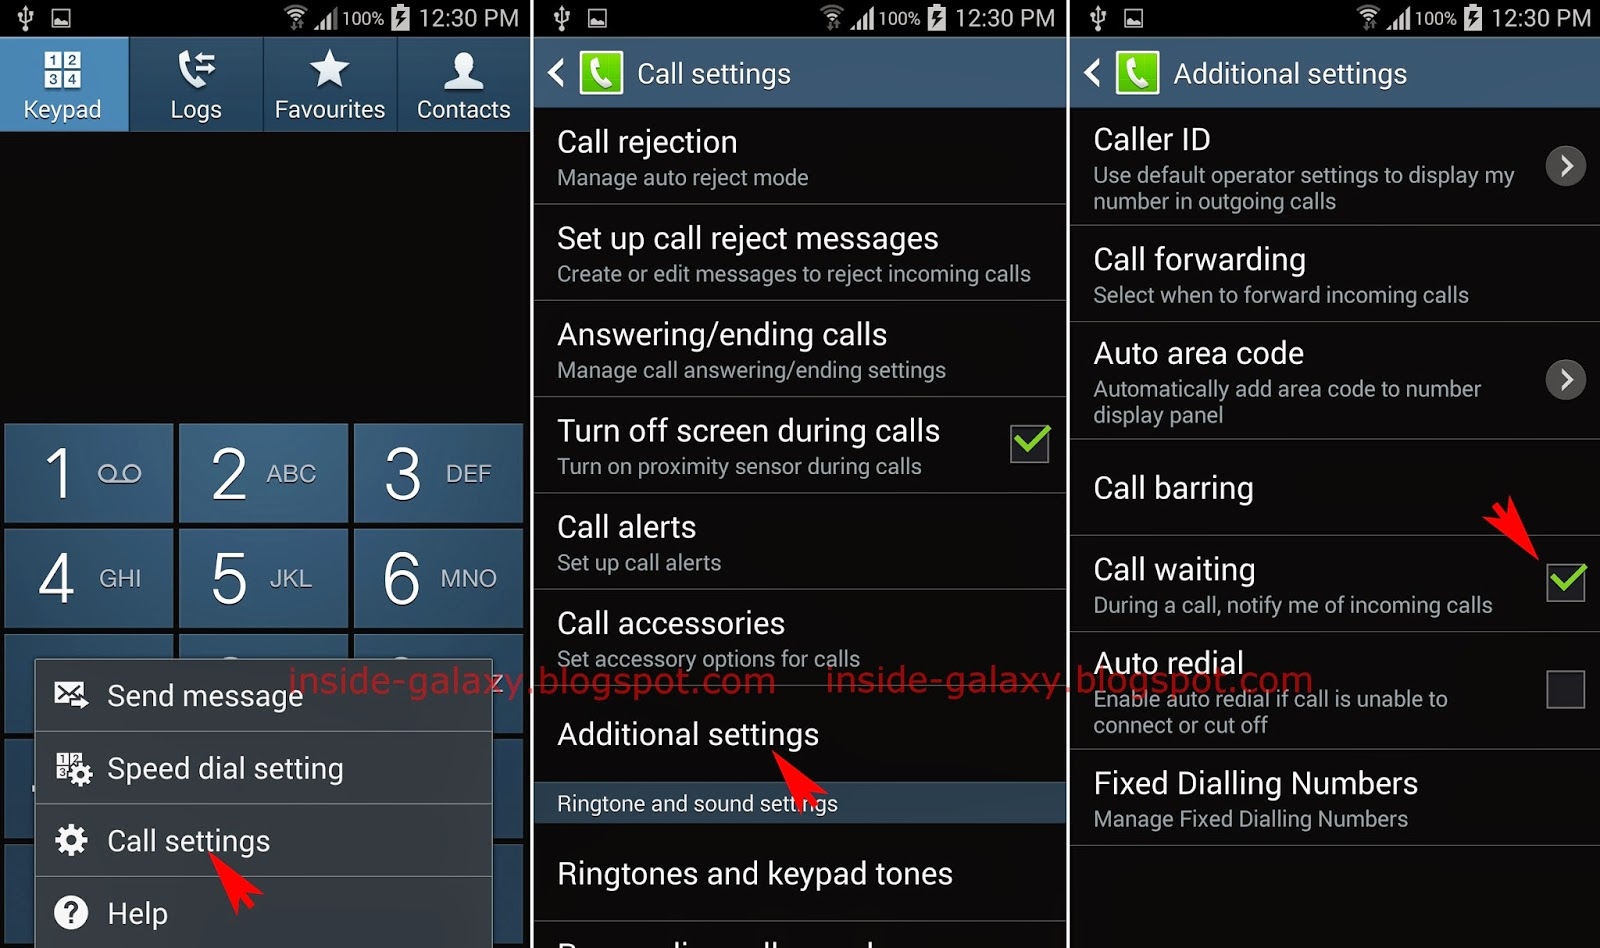 Samsung Galaxy S4: How to Enable and Use Call Waiting in Android 4 4